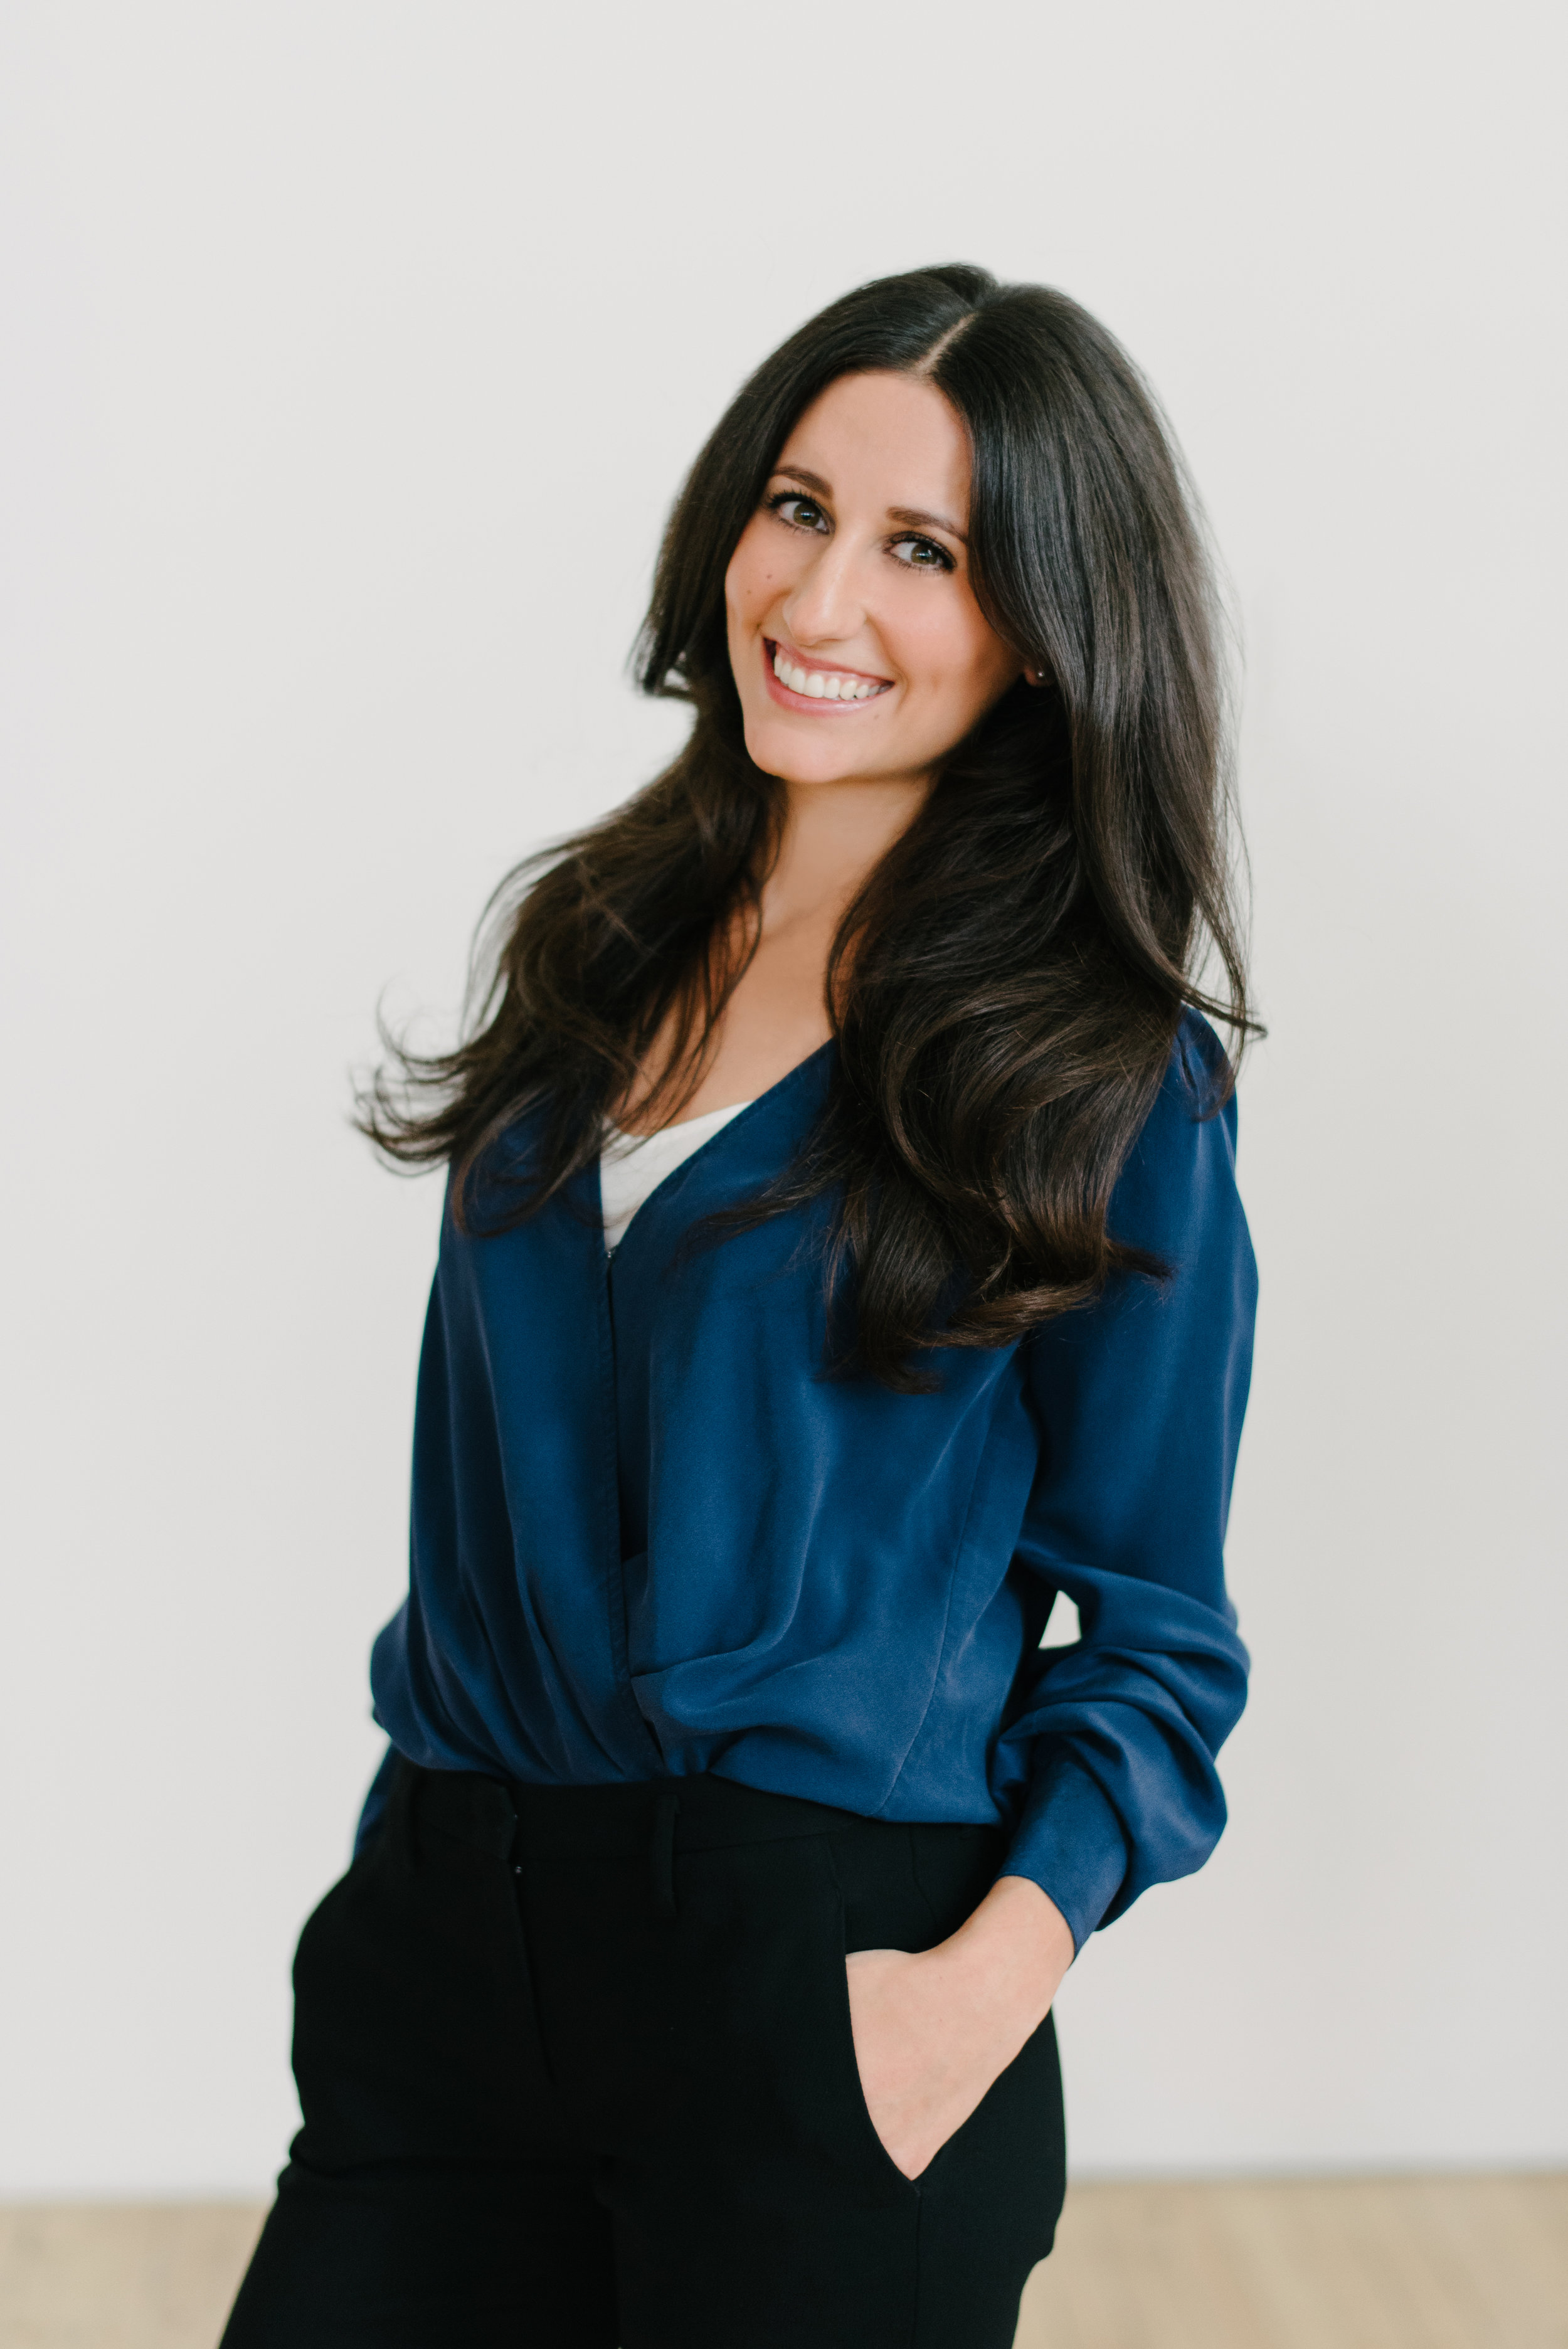 Meet Ashley. - We are so excited to welcome Ashley Falco, Registered Psychotherapist, to our team! She is a great addition to our team, with a shared focus on young professionals while also an ability to dig deep into self-esteem,body image and self-compassion.